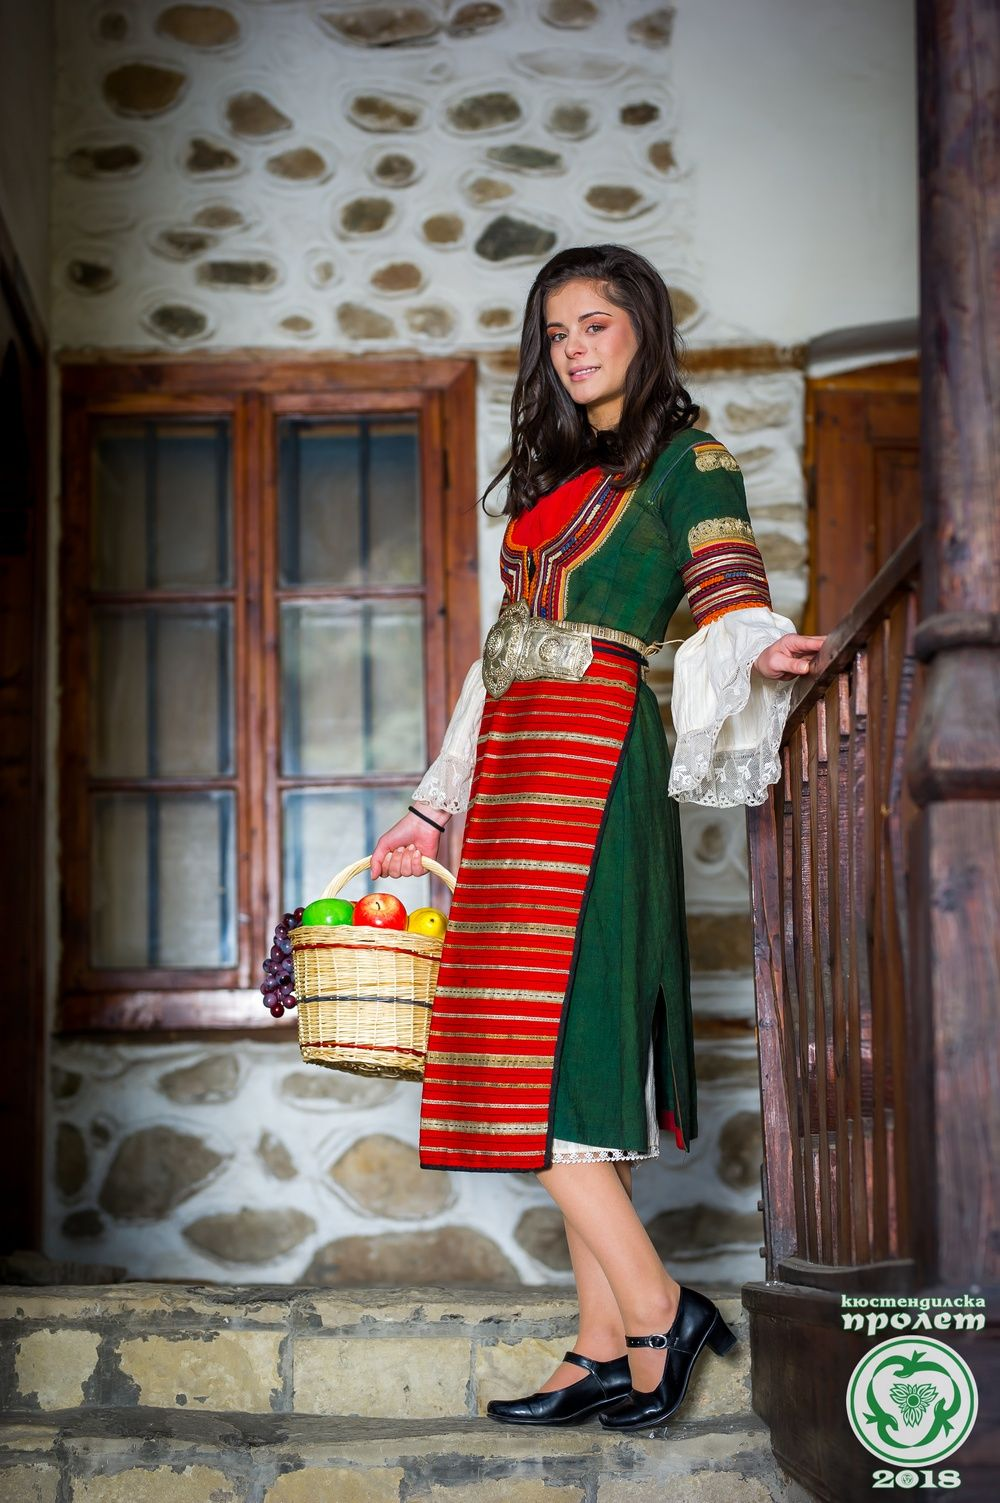 Resize On The Fly Php 1000 1503 Bulgarian Clothing Fashion Fashion History